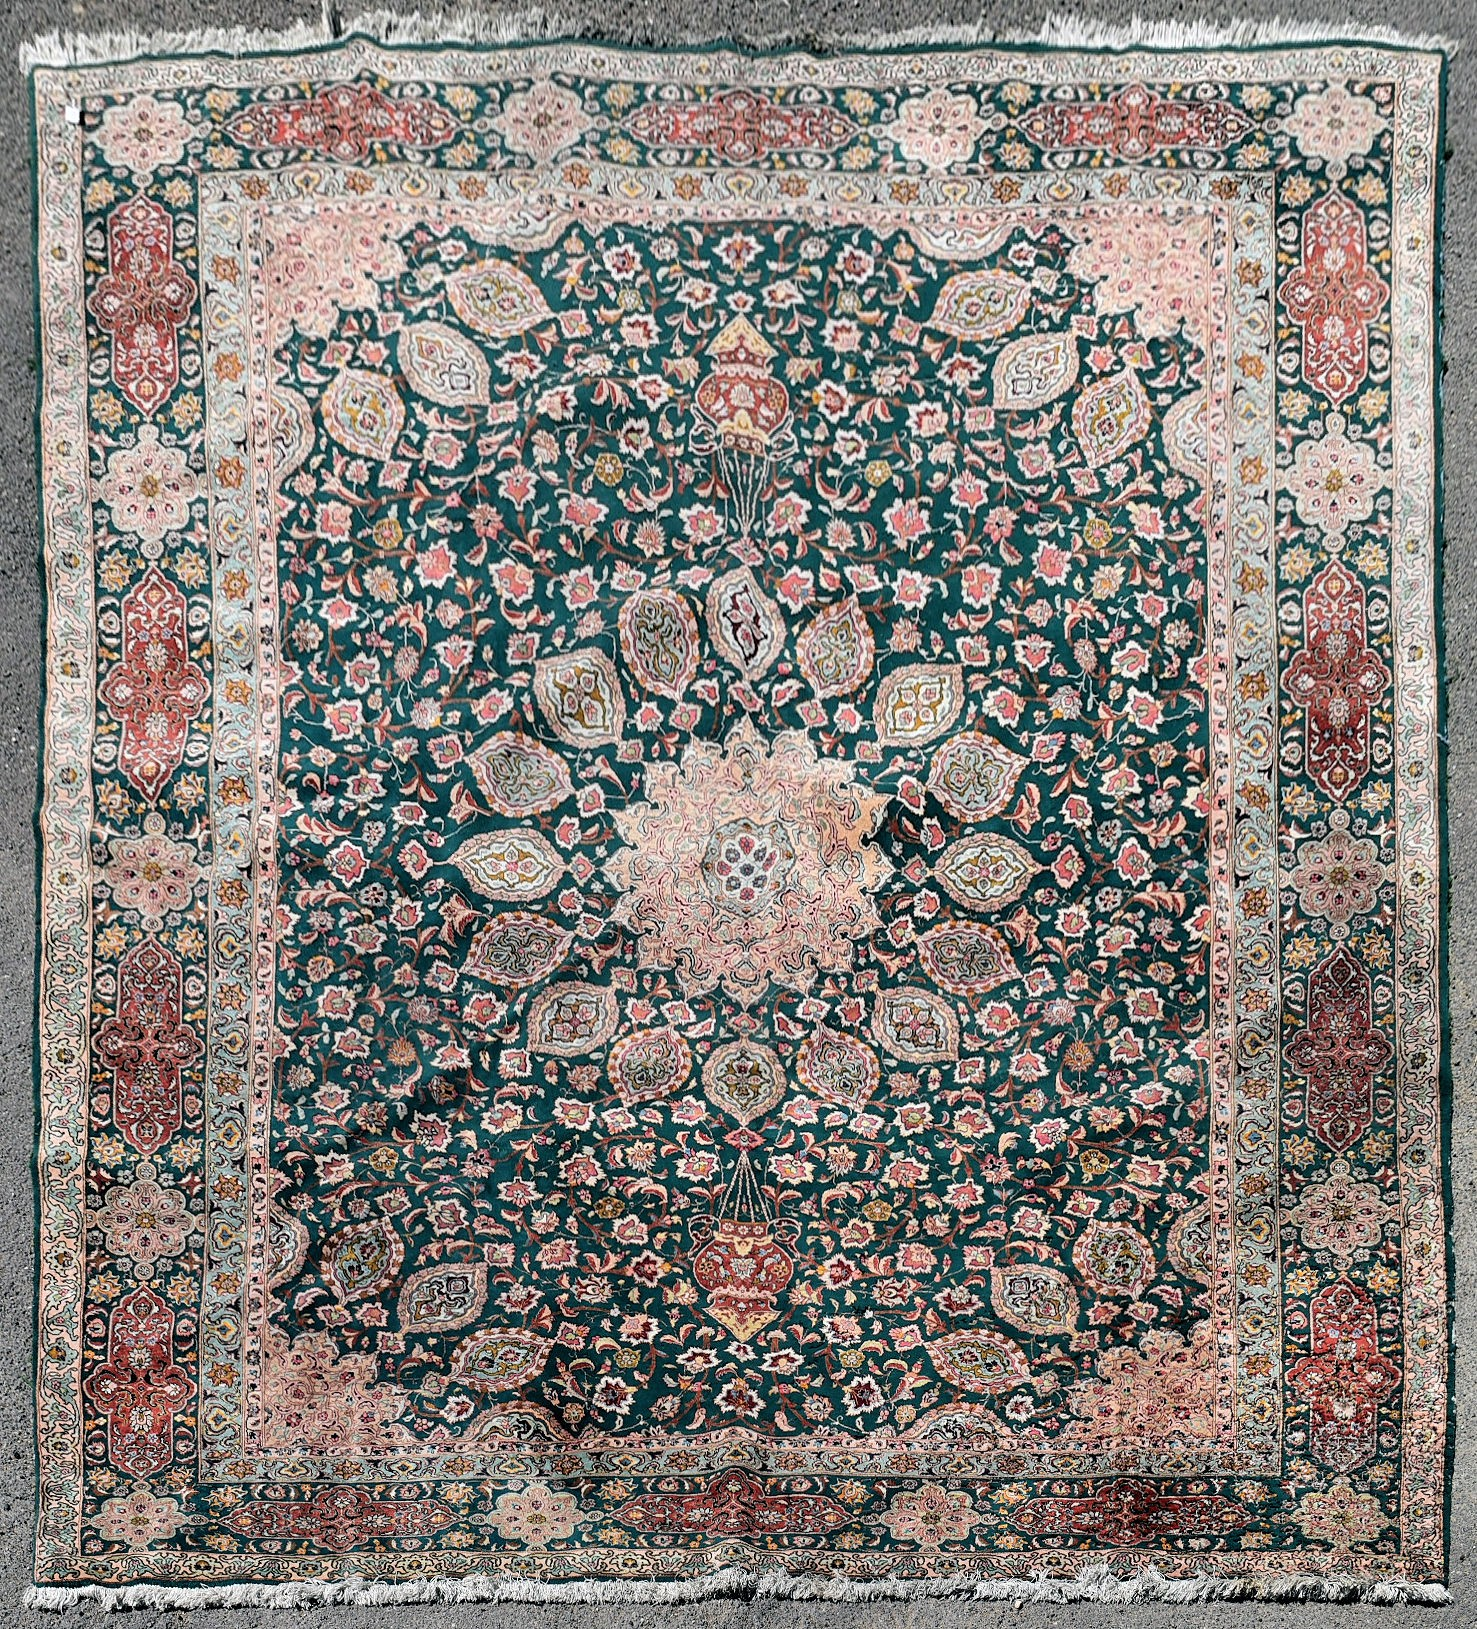 A fine Persian Tabriz carpet with central floral medallion and meandering flowerhead motifs across